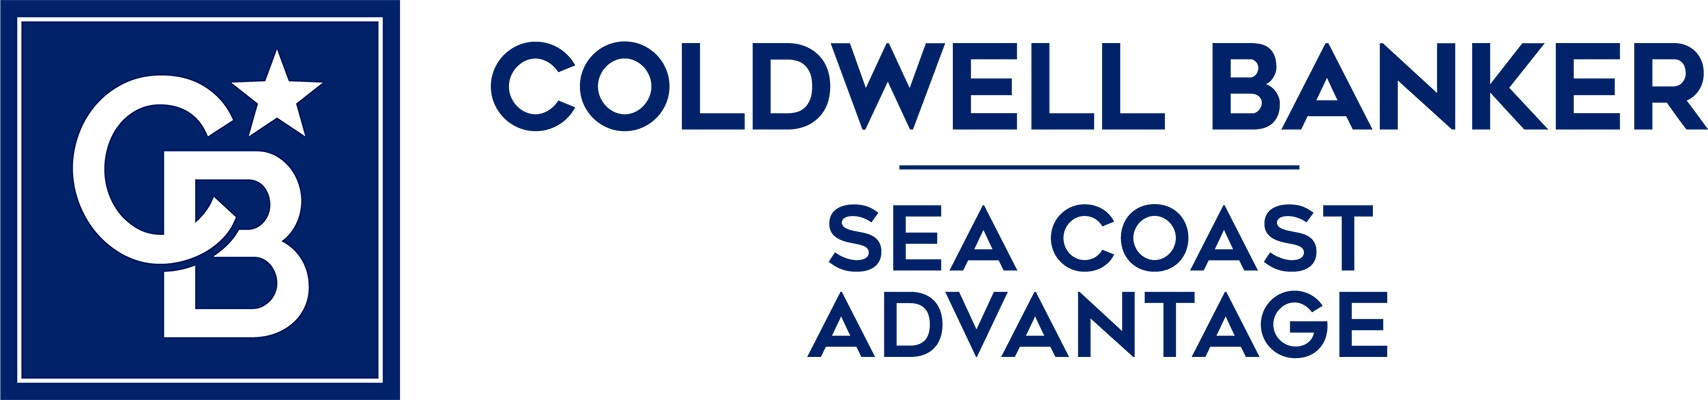 David King - Coldwell Banker Sea Coast Advantage Realty